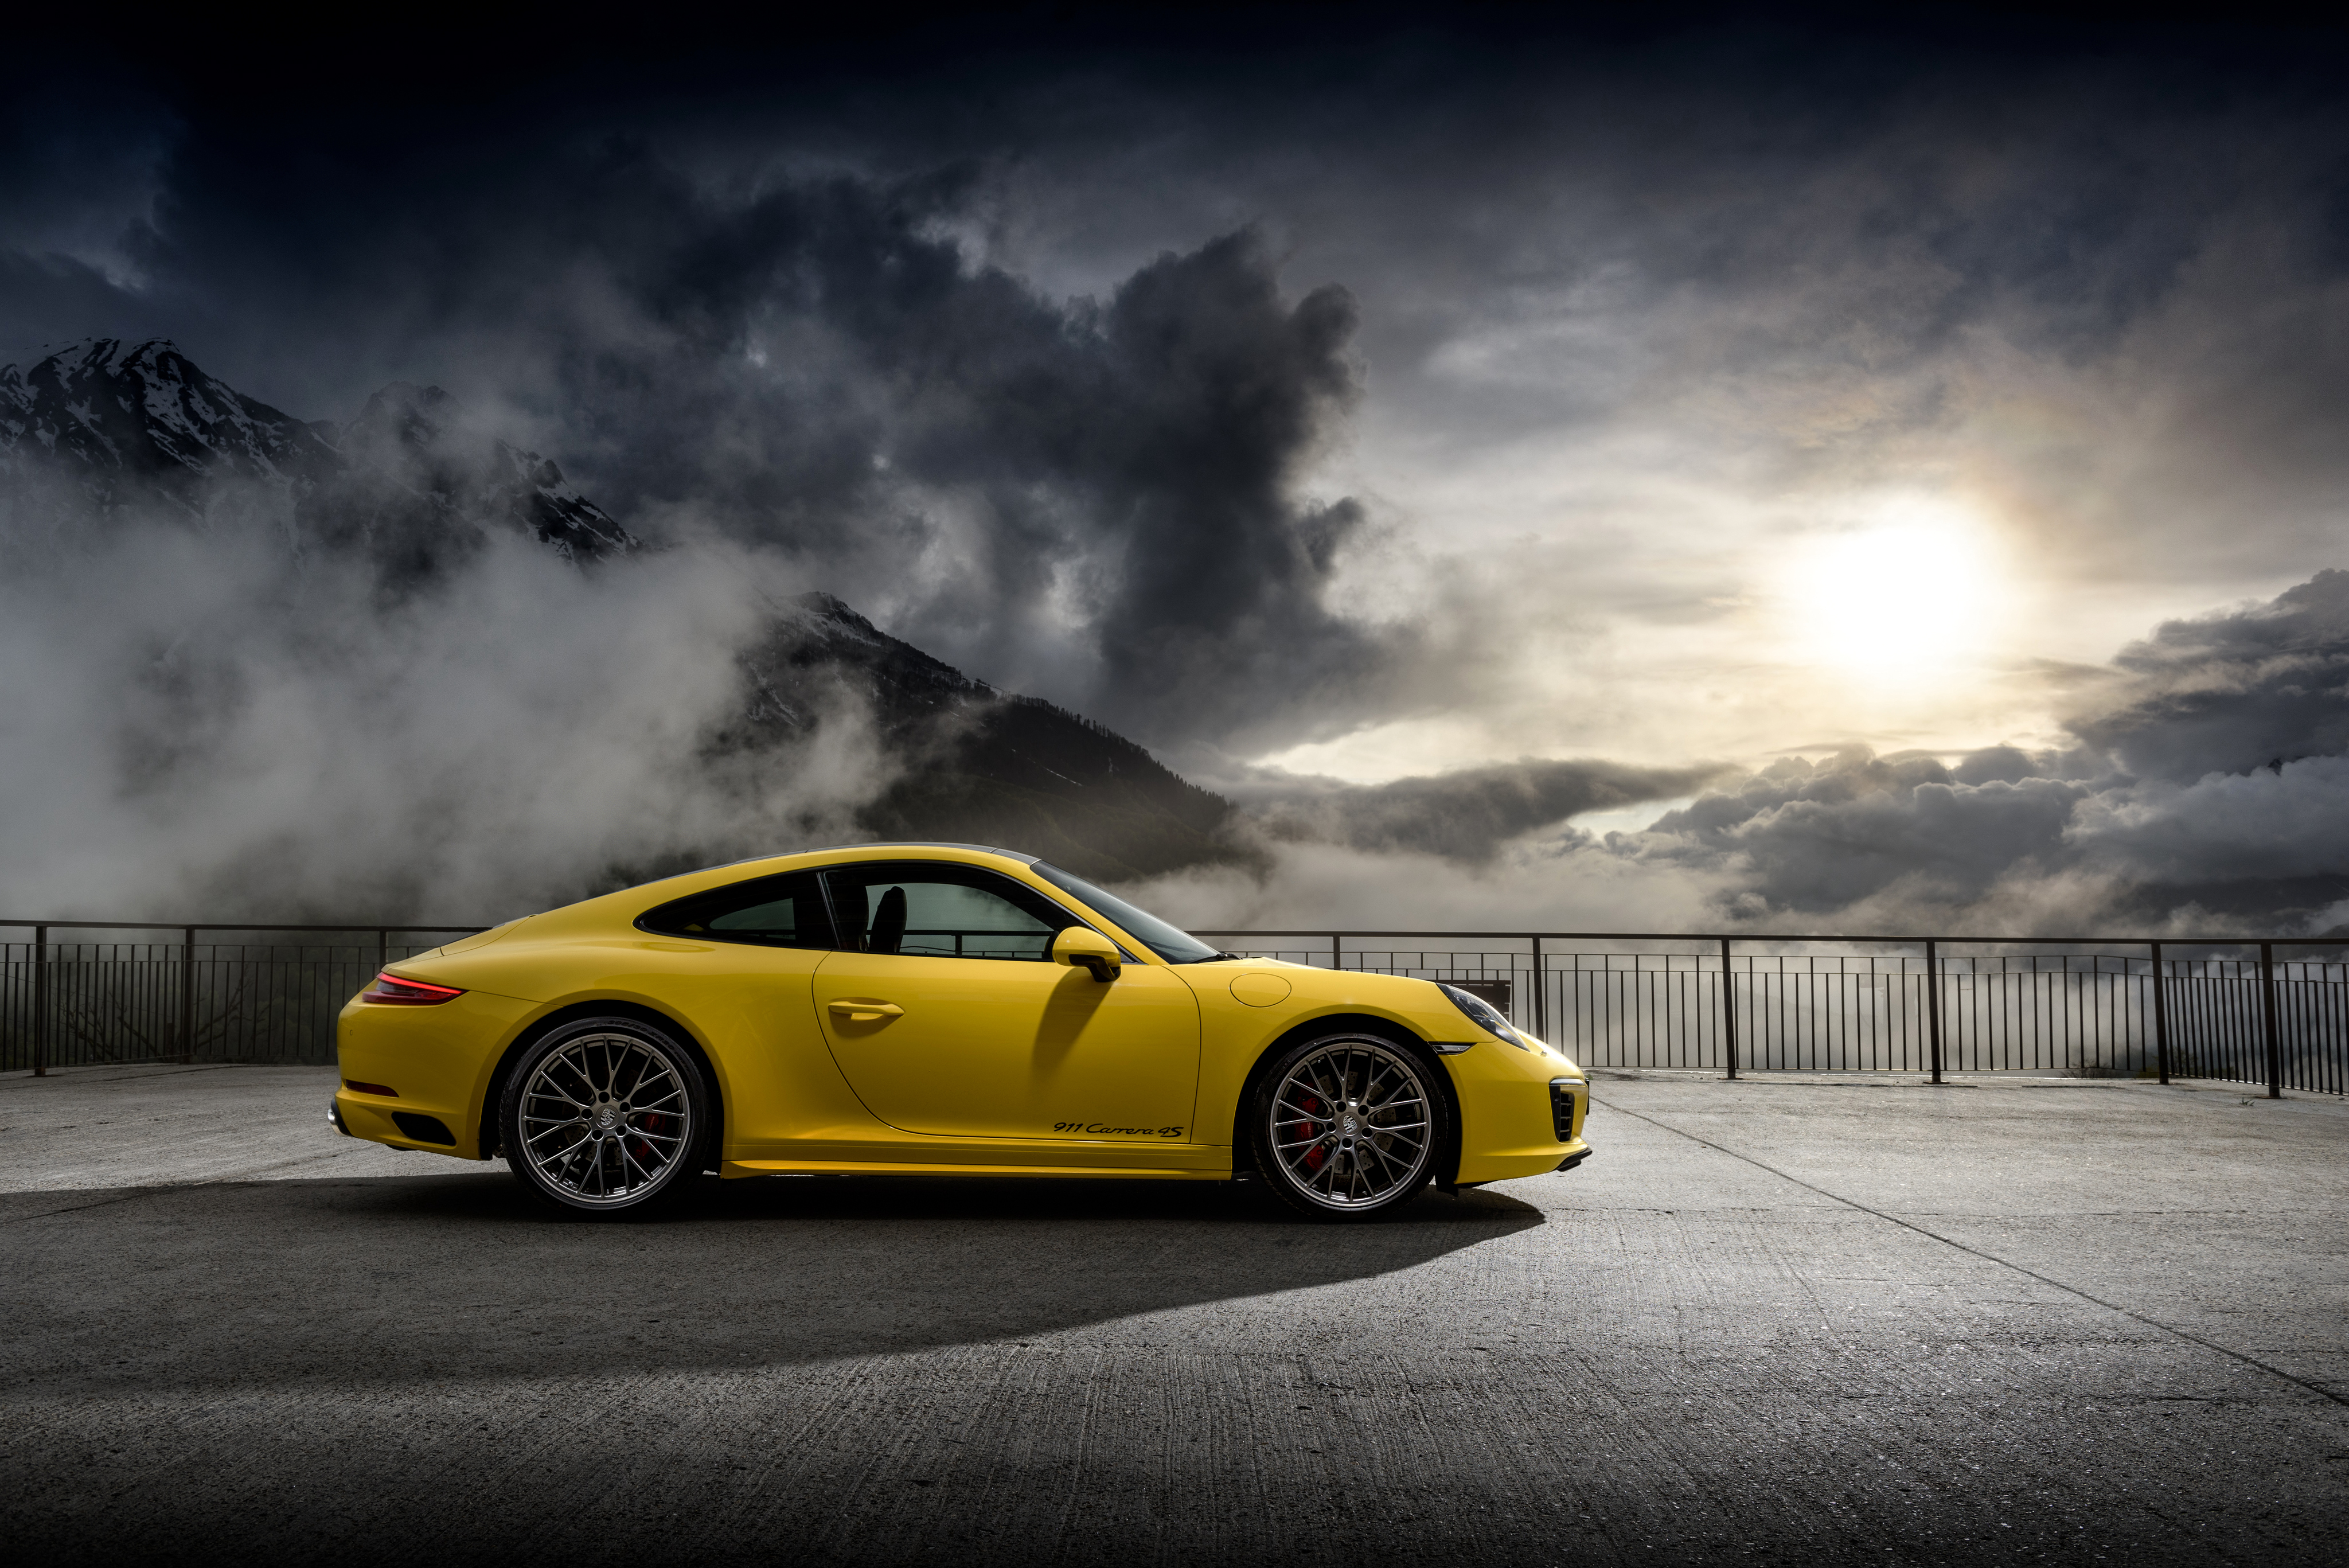 Porsche 911 Carrera 4S 4k Ultra HD Wallpaper Background Image 4096x2734